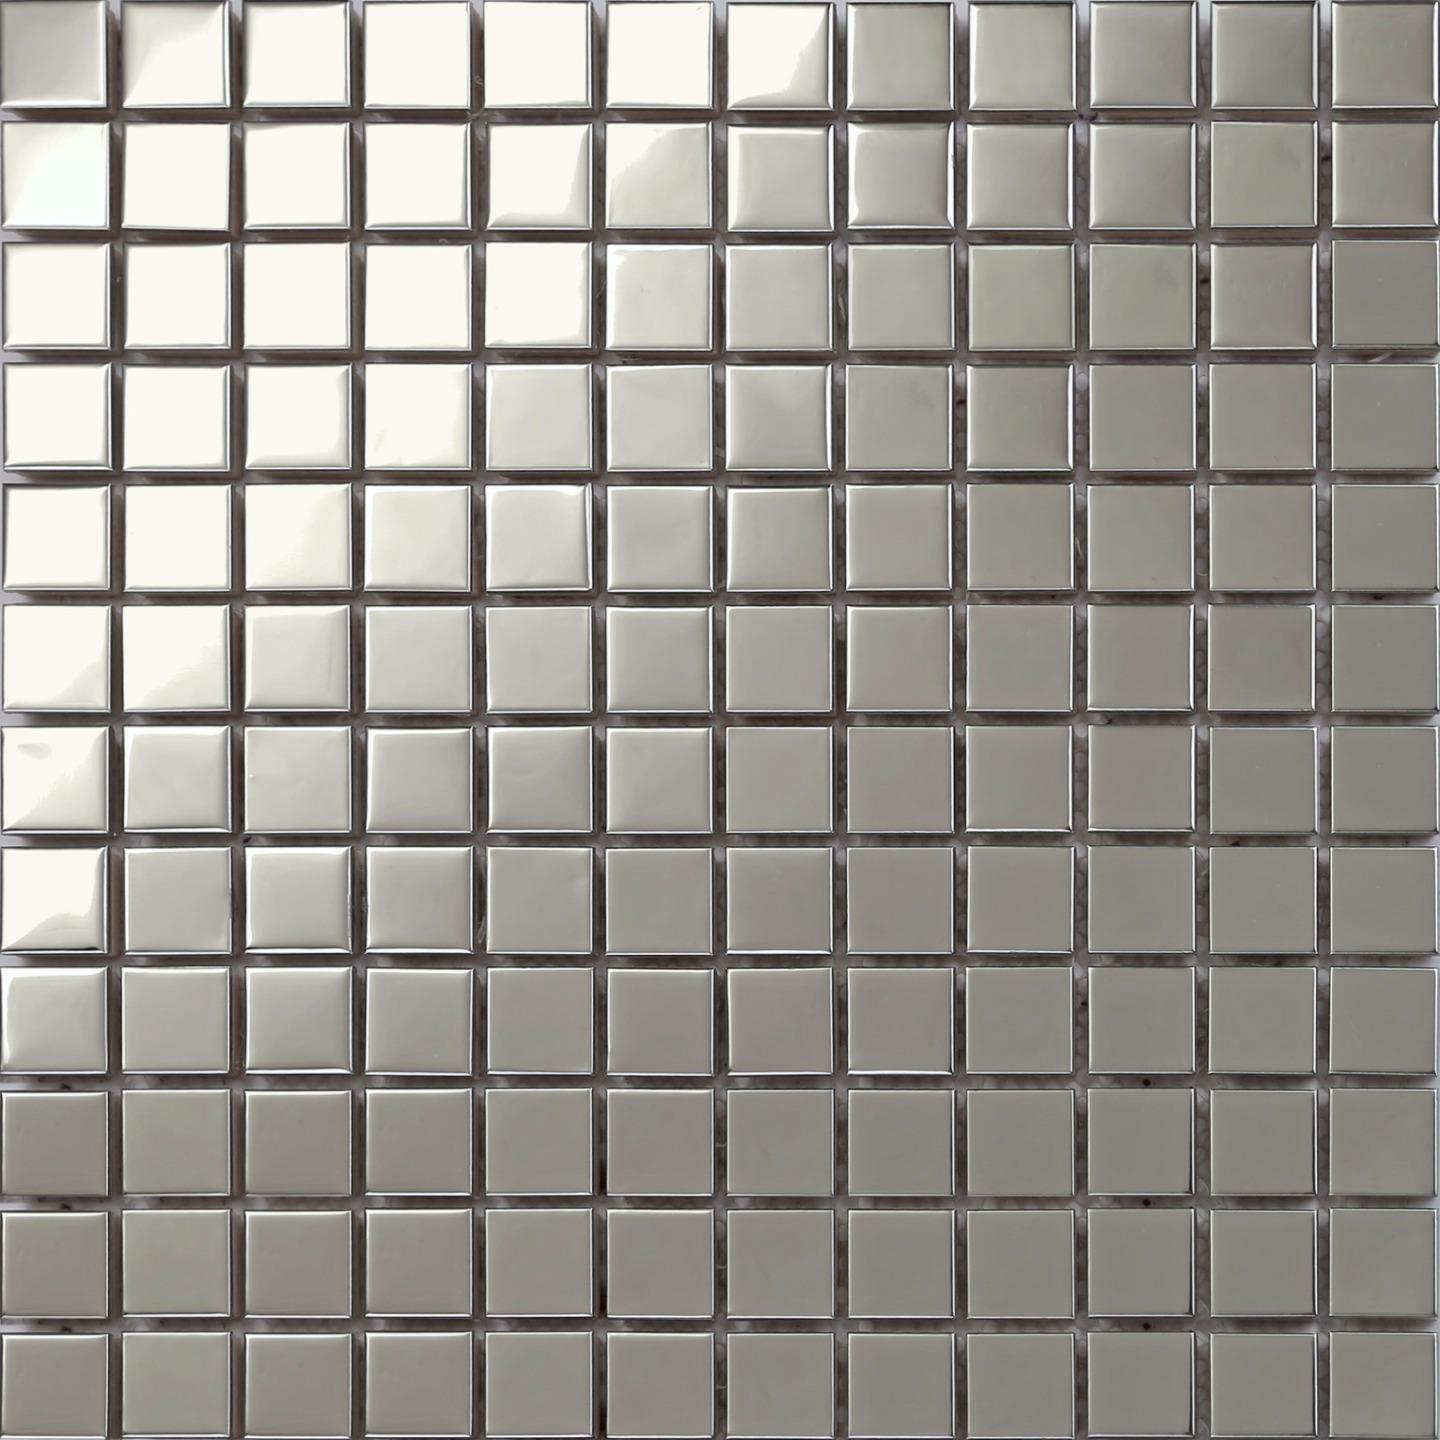 1 SQ M Polished Stainless Steel Mosaic Tiles Sheet 300x300x8mm (MT0130)